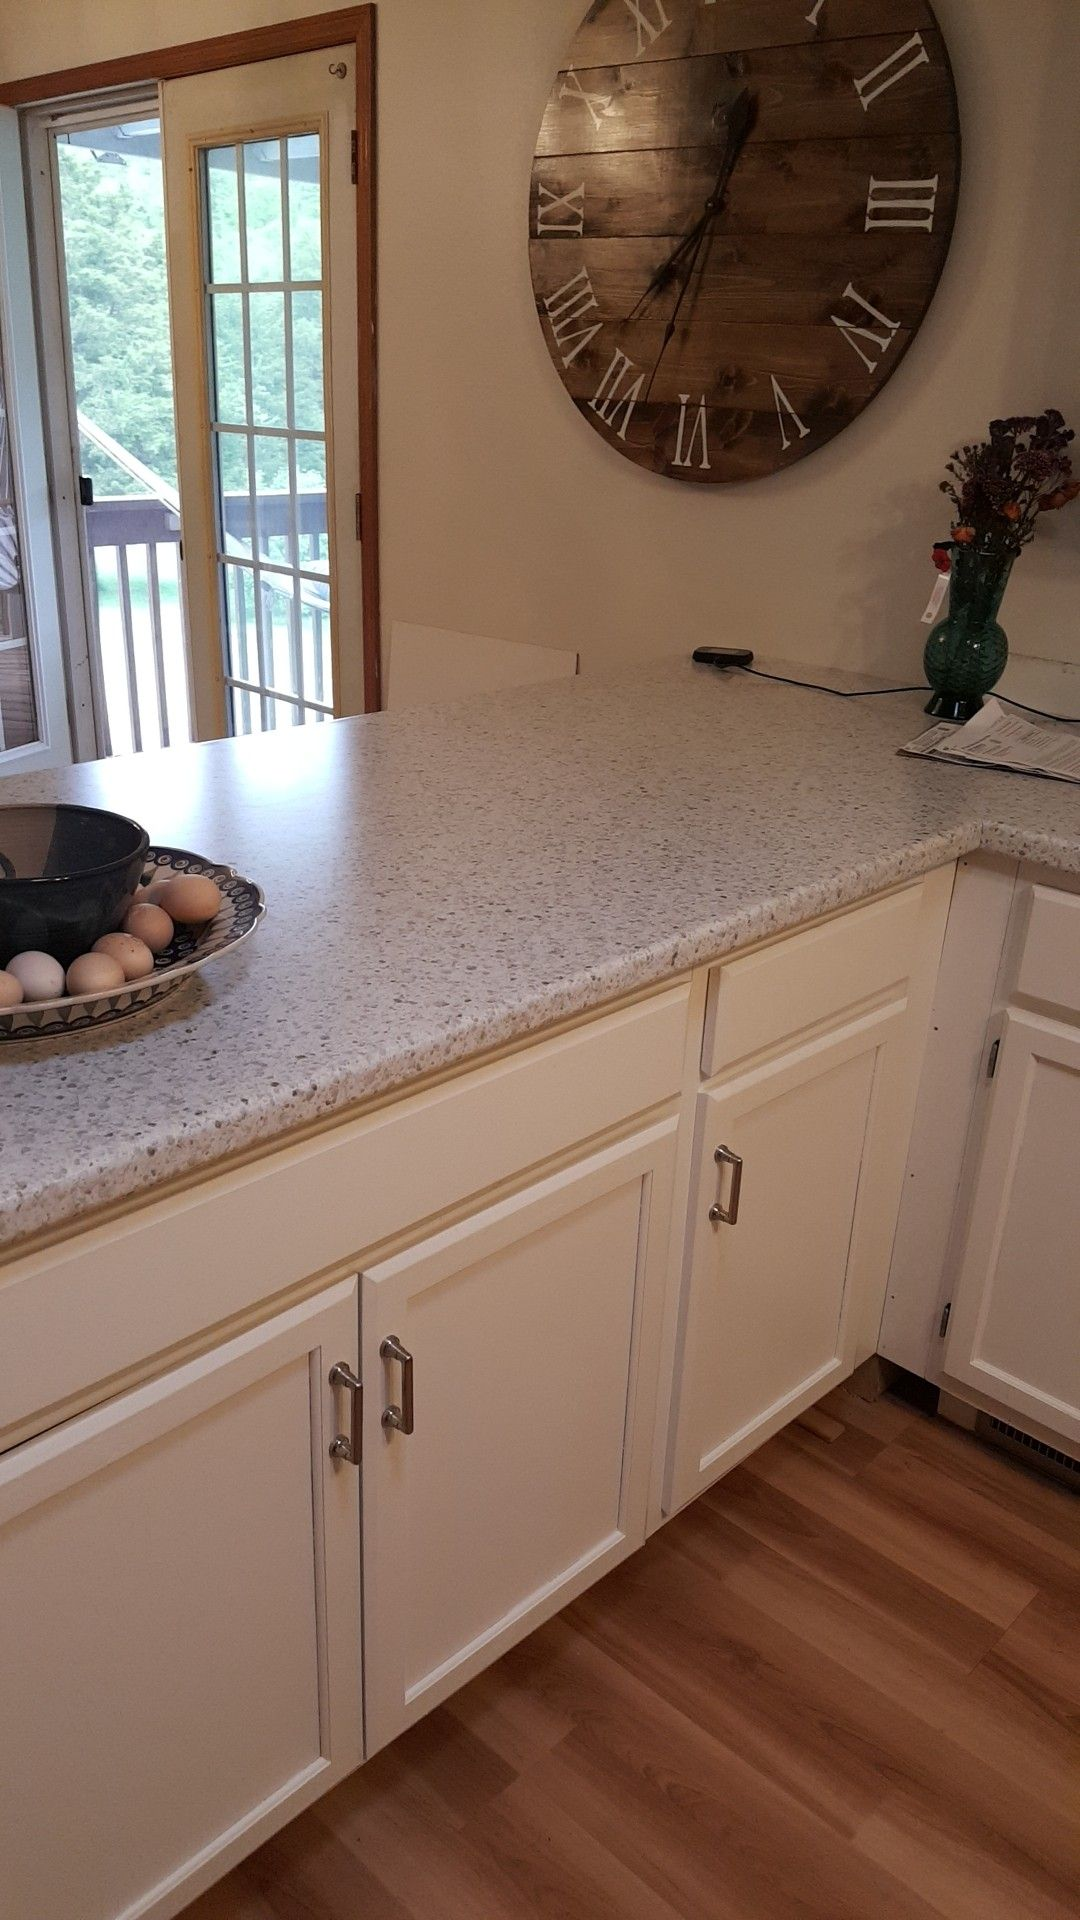 Hd Formica Countertops Wilsonart Laminate Countertop In Leche Vesta You Can See The